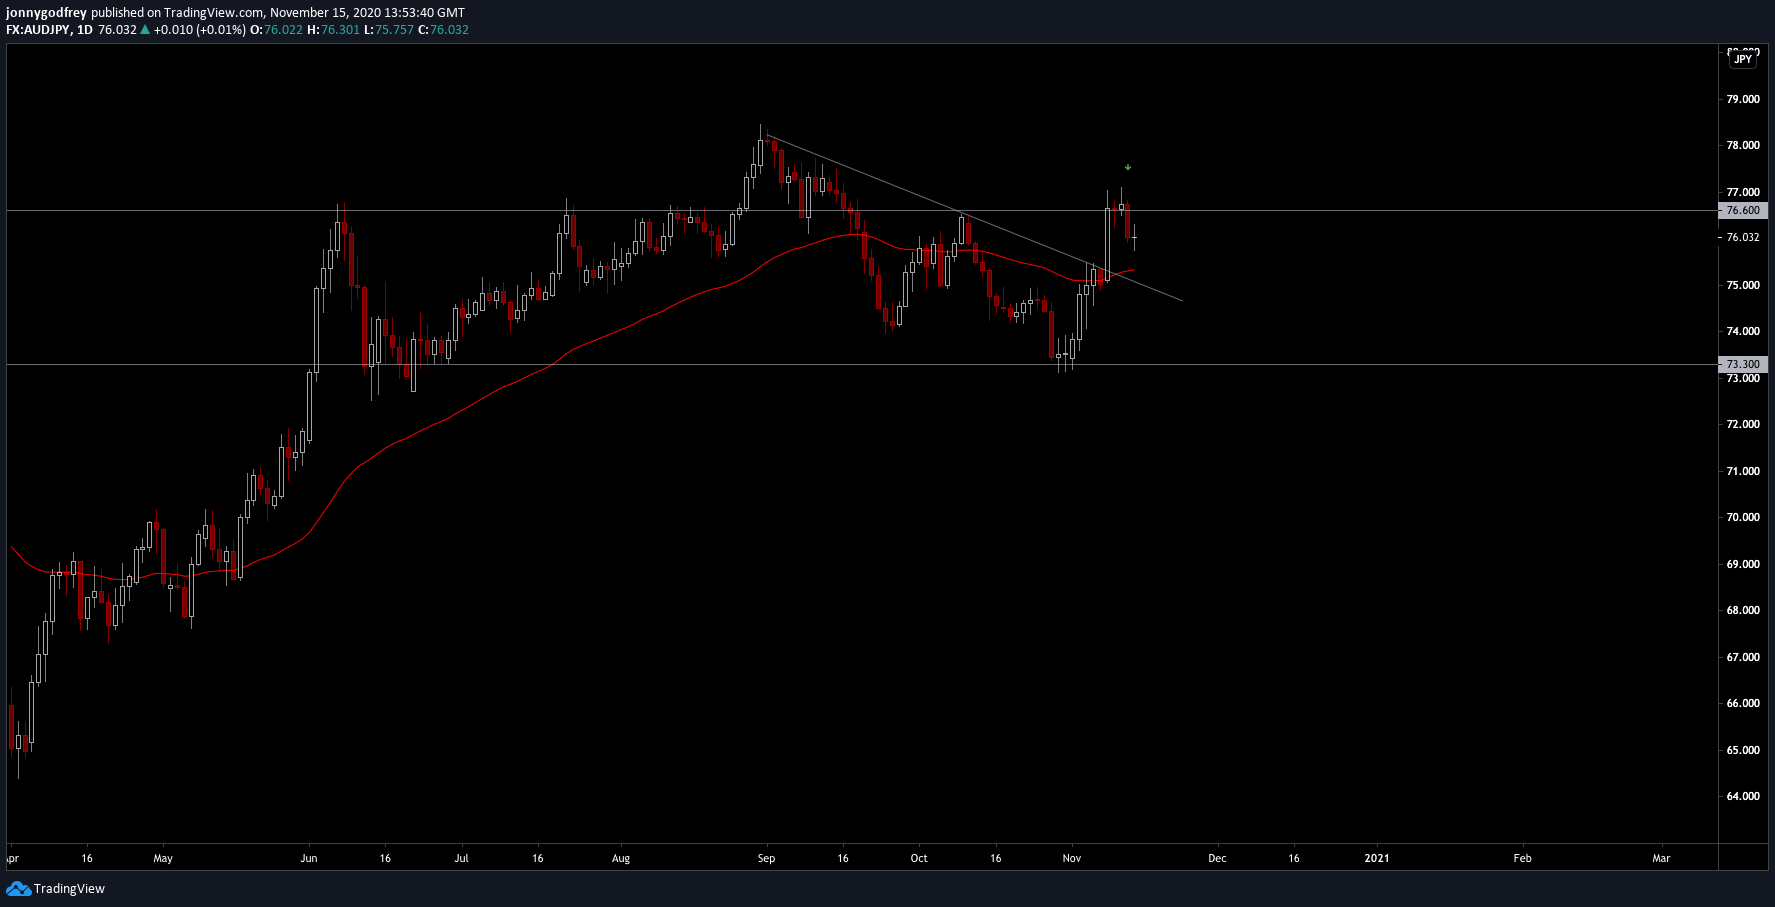 AUDJPY daily chart